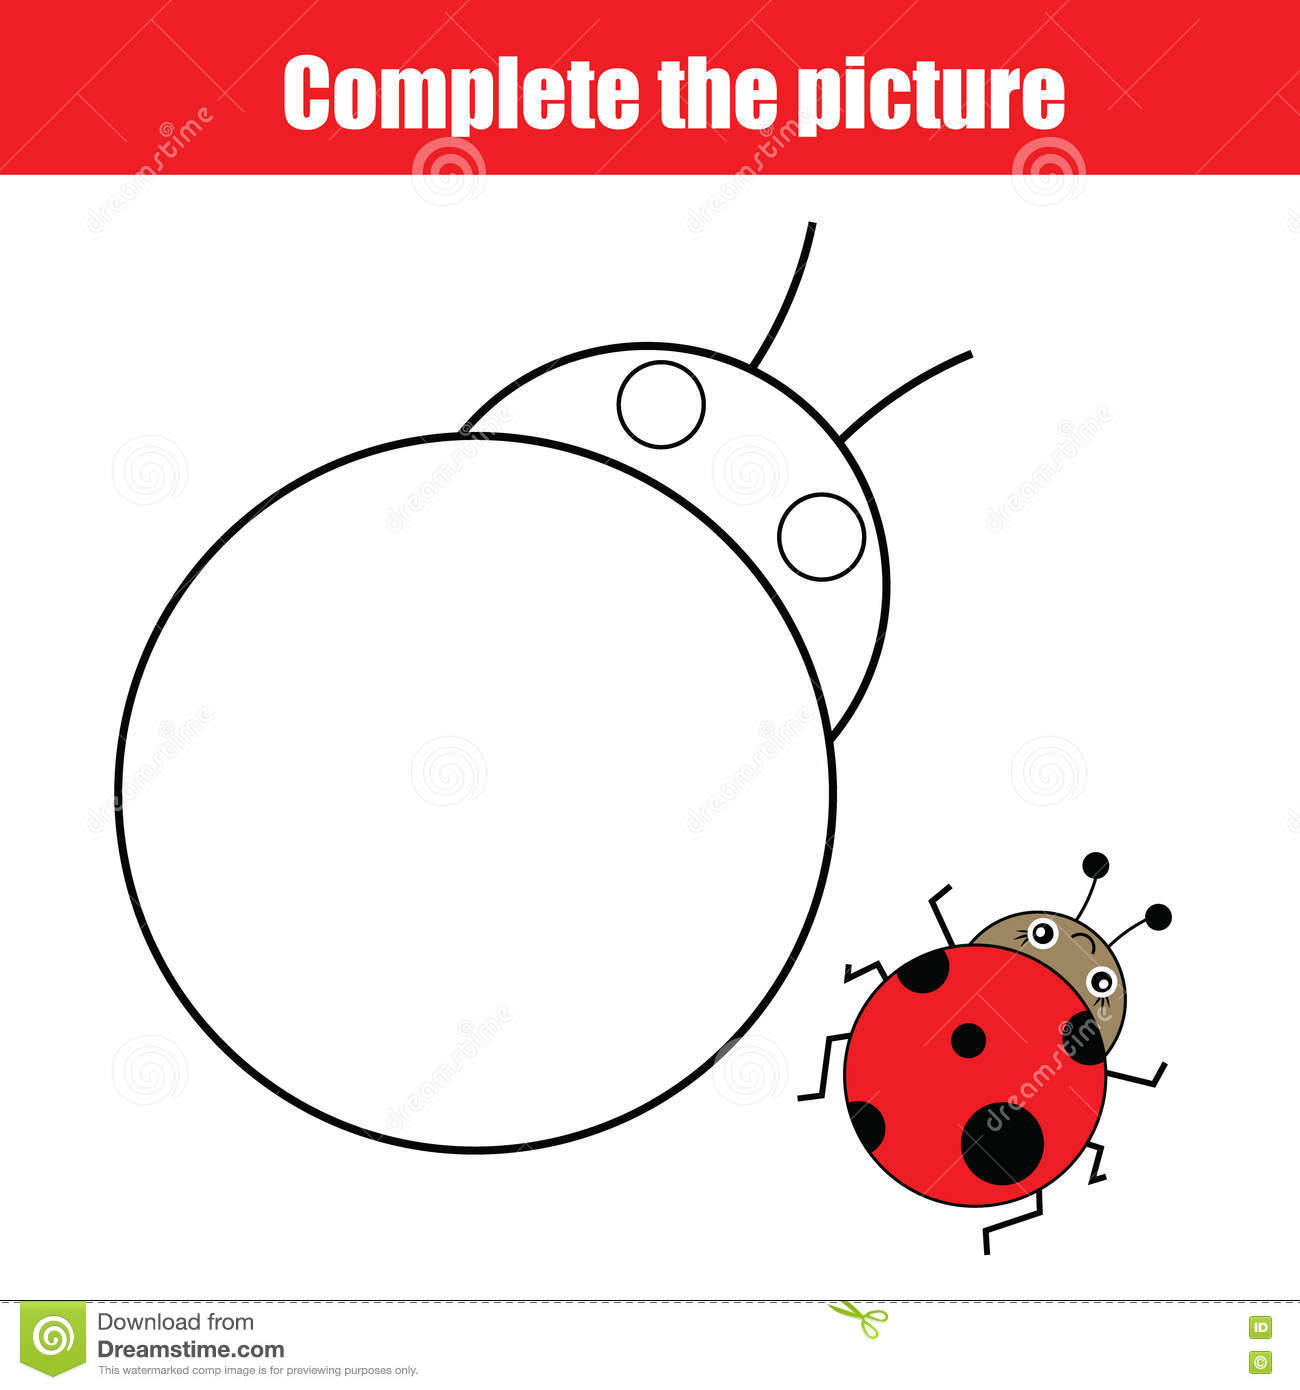 complete the picture children educational drawing game coloring